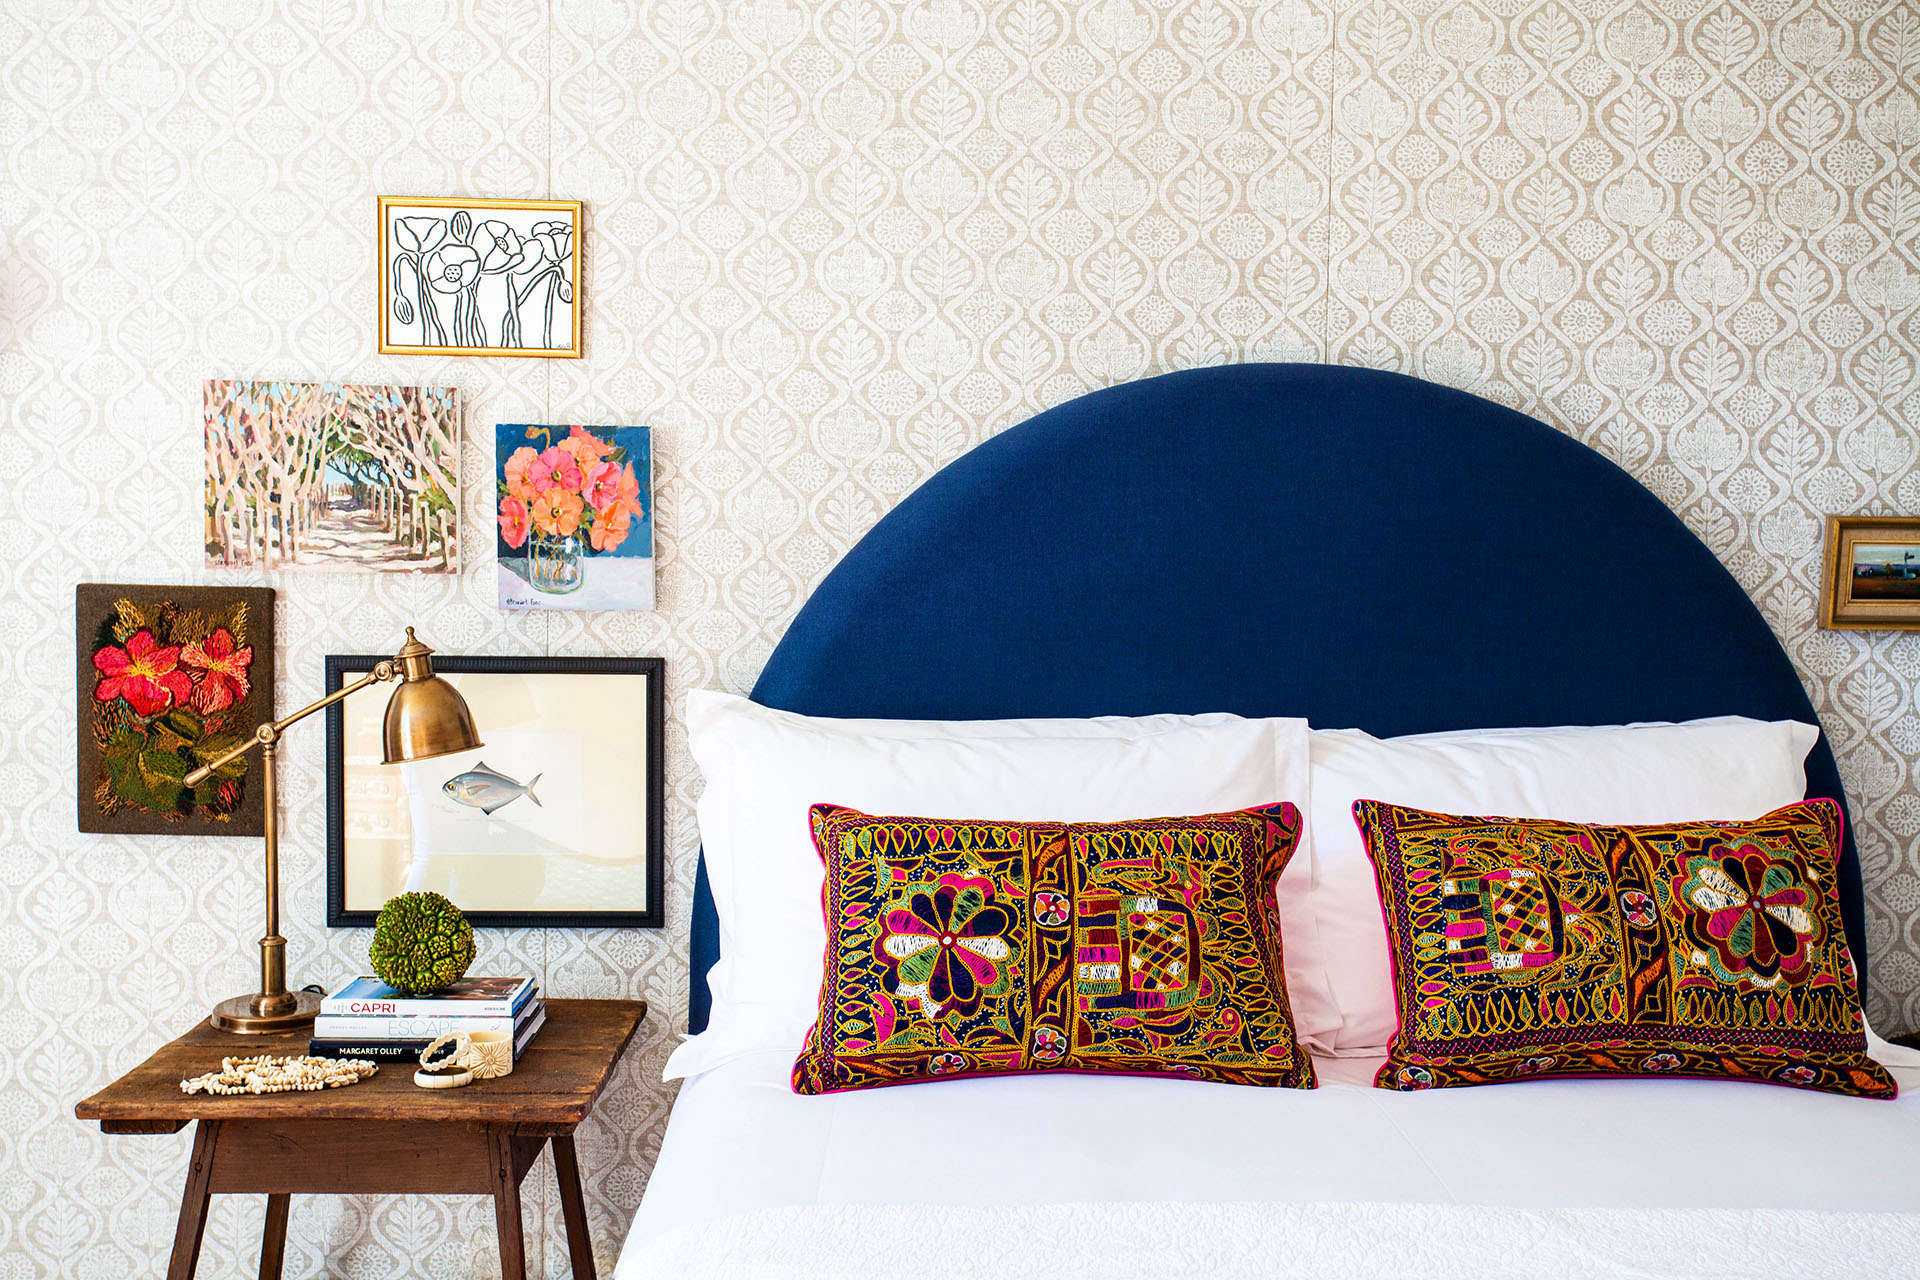 A bright mix of fabric patterns on headboard and walls at Halcyon House, a boutique hotel in Cabarita Beach, Australia, designed by Anna Spiro| Remodelista